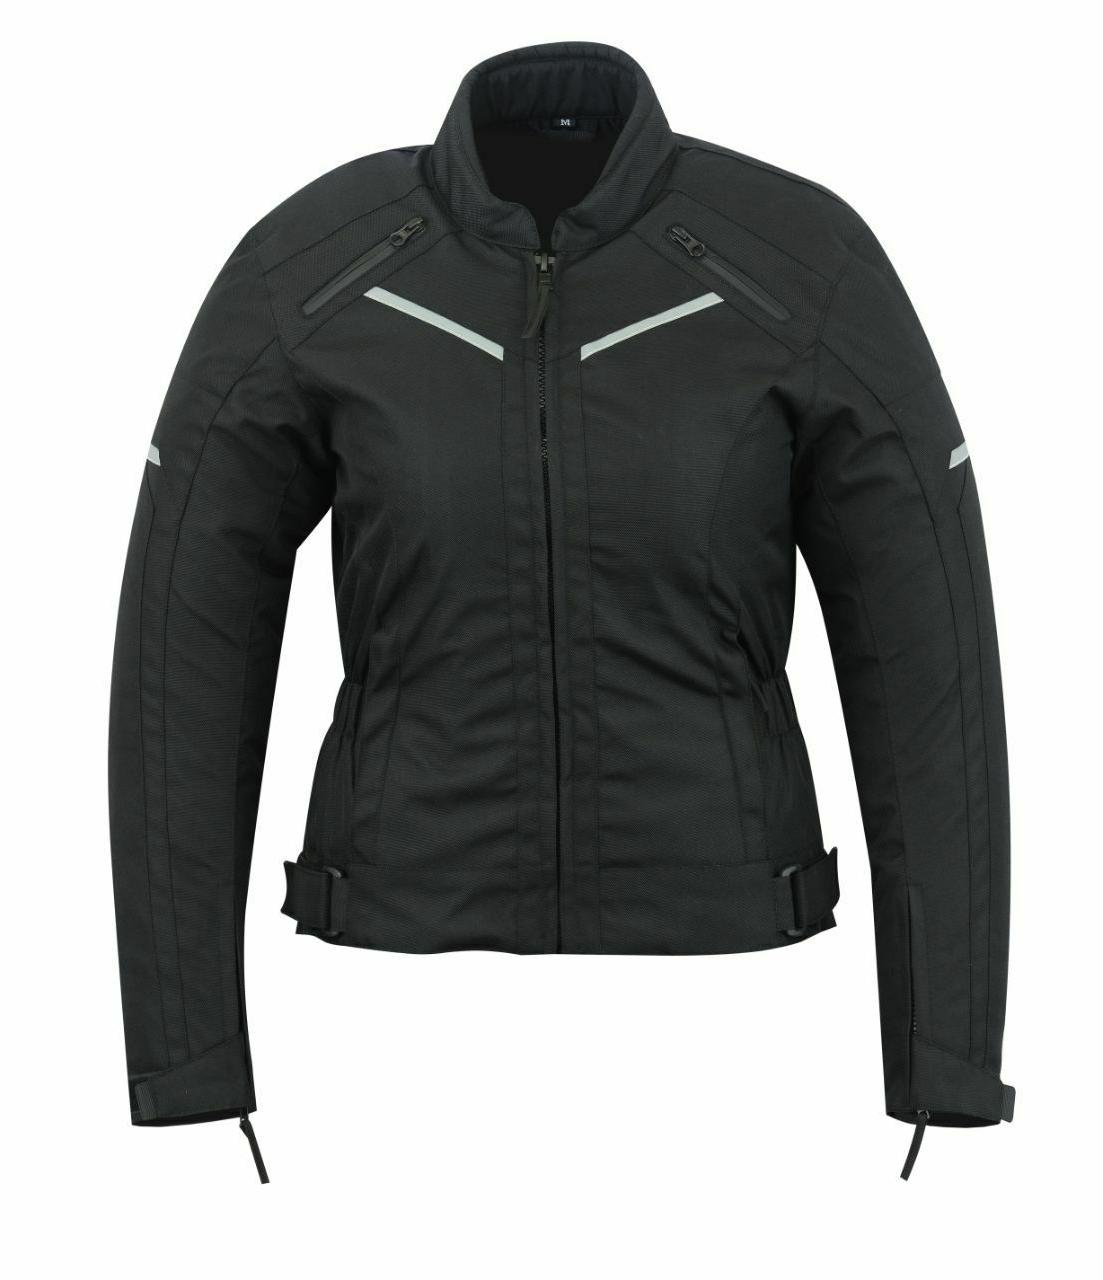 womens motorcycle armored high protection waterproof jacket